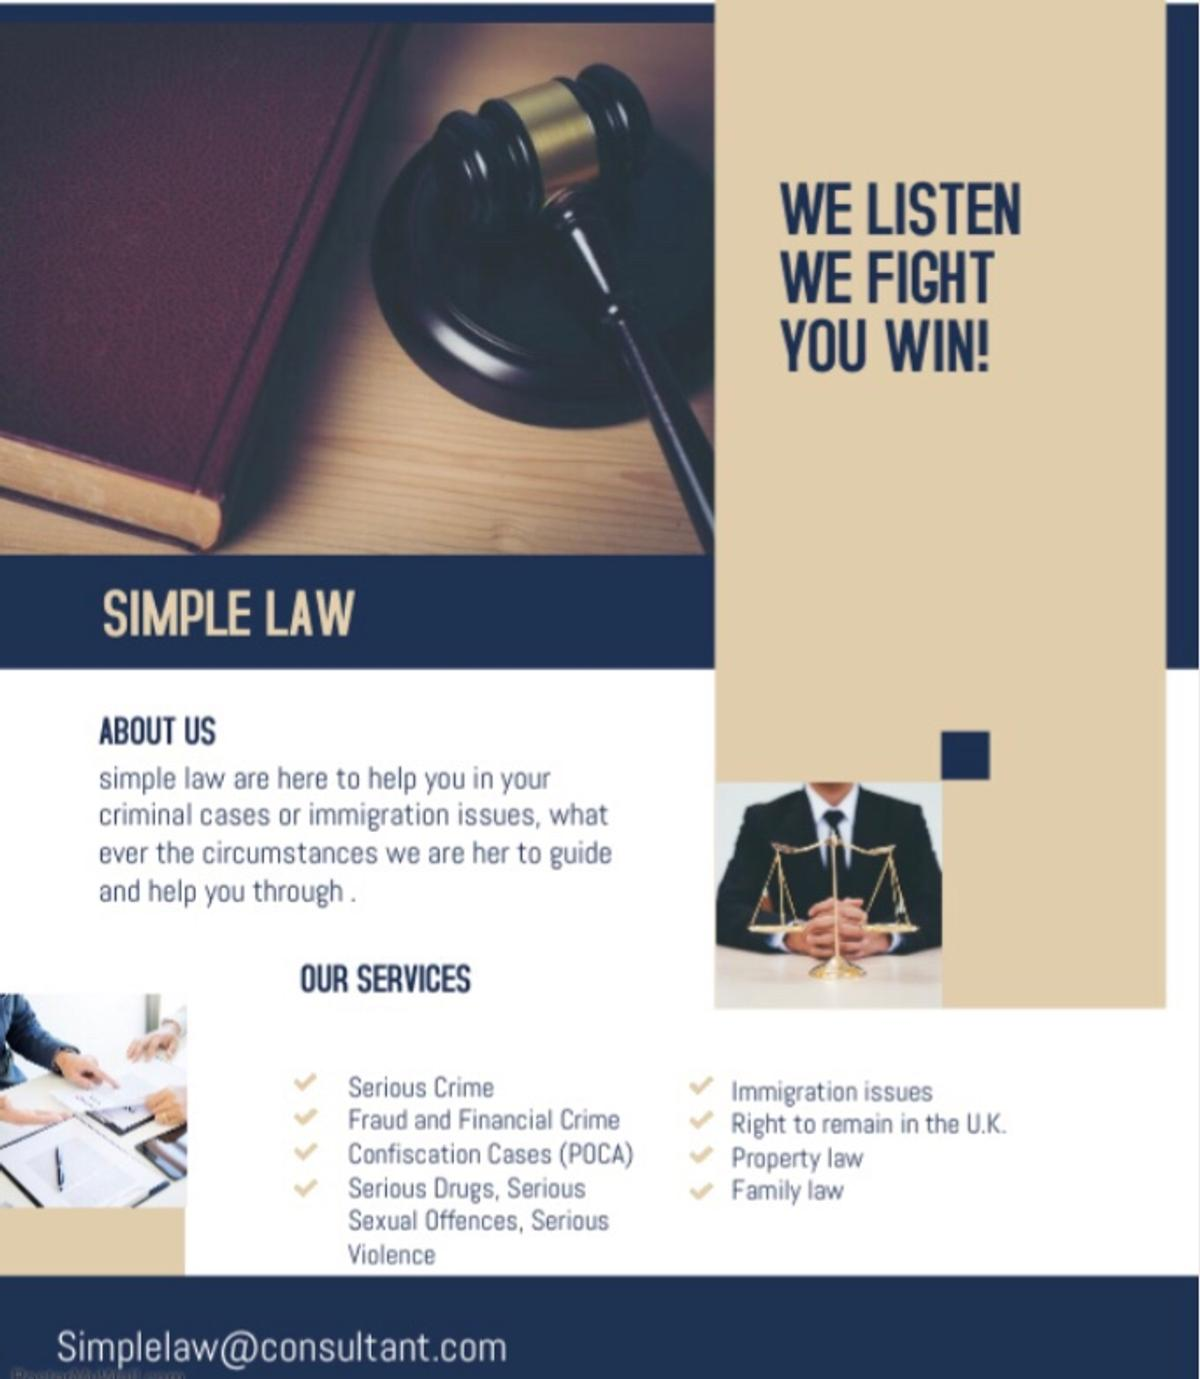 Criminal cases, confiscation orders, prison Law, we can help you with your criminal cases Email your query at , simplelaw@consultant.com Or private offer for response Thankyou